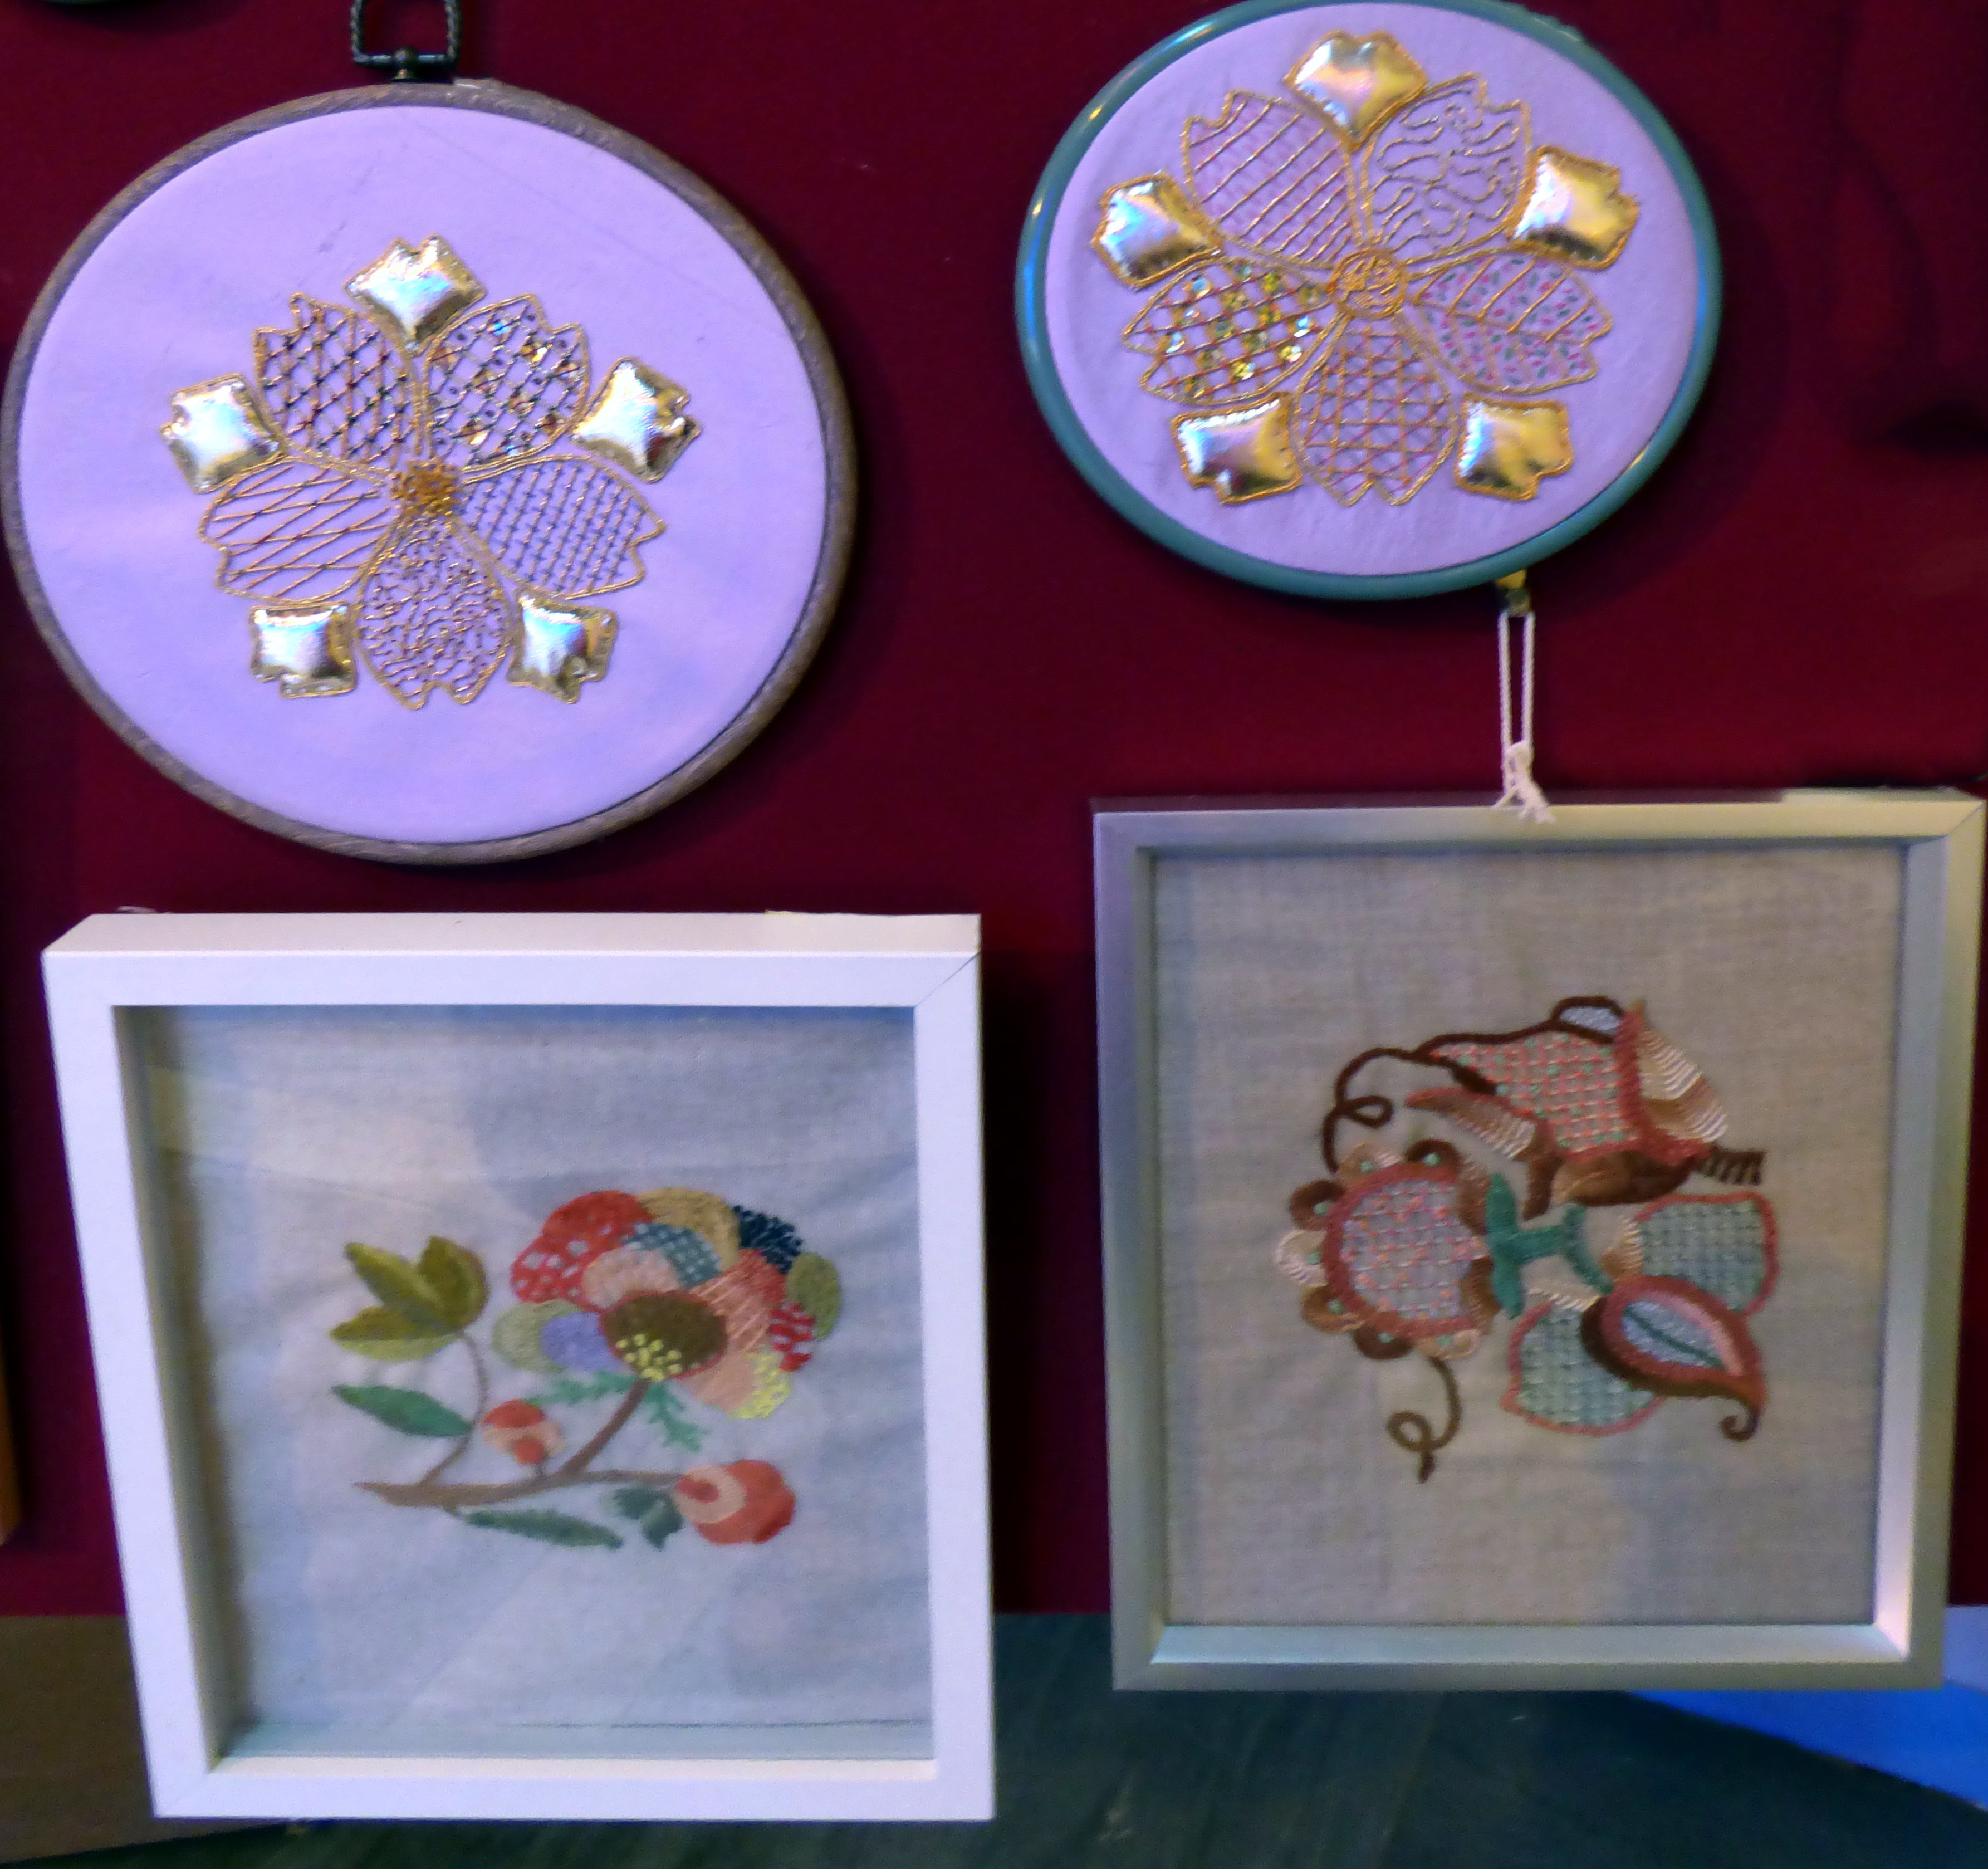 GOLDWORK by A.Kefford, GOLDWORK by J.Felgate, CREWELWORK by V.williams and HAND EMBROIDERY by A.Kefford, at Embroidery for Pleasure exhibition, Liverpool Metropolitan Cathedral 2016